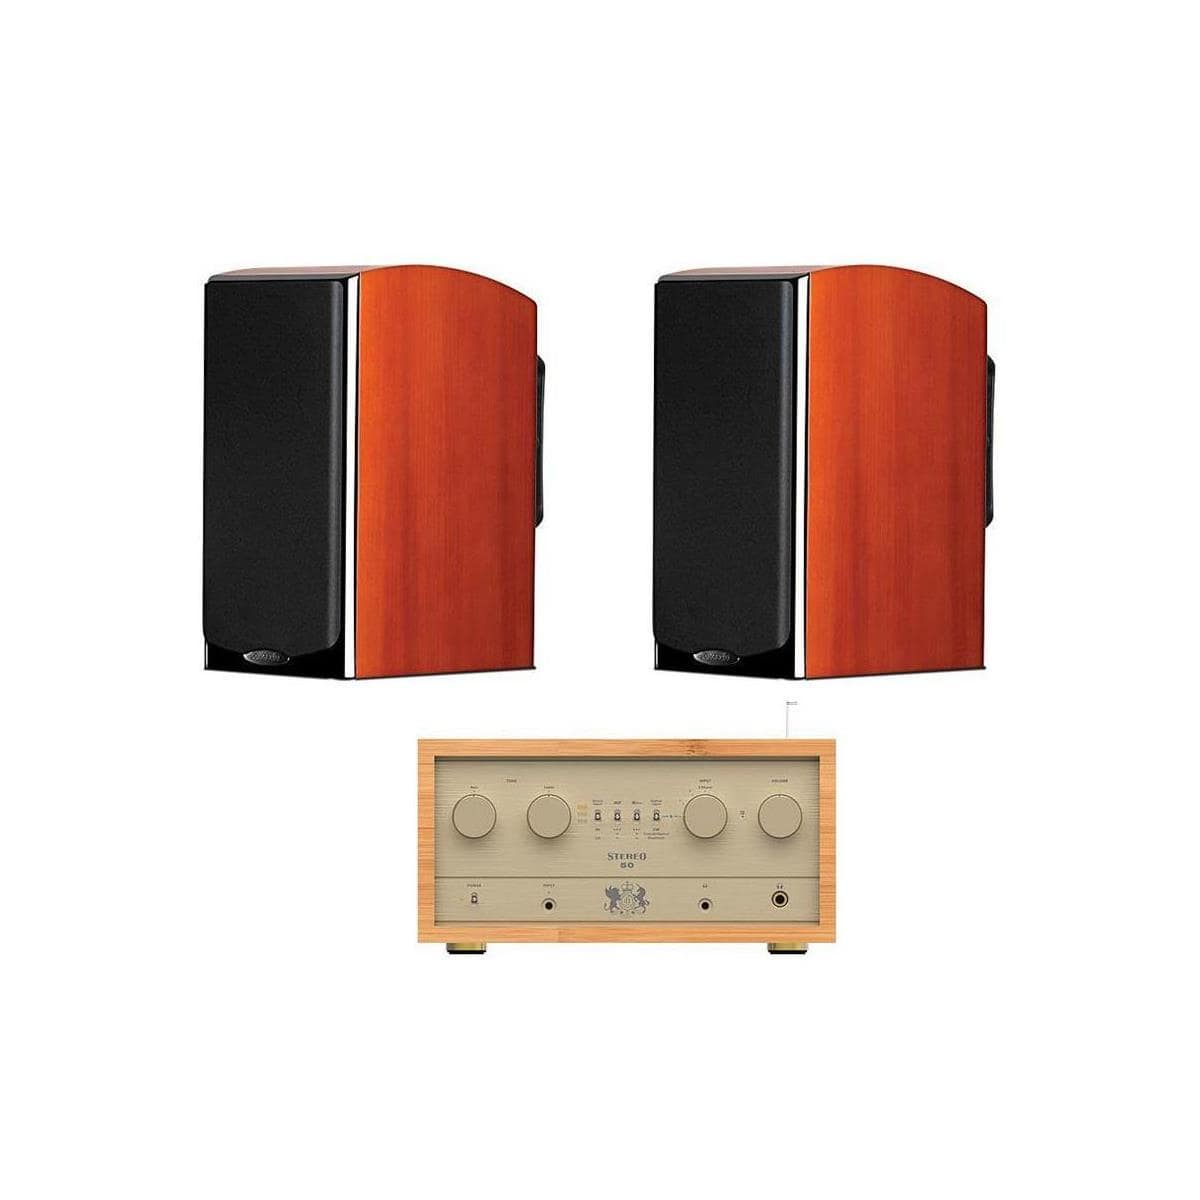 Polk LSi M703 Bookshelf Speakers (pair) + iFi Retro S50 Tube Amplifier & Dac $1495 + free shipping